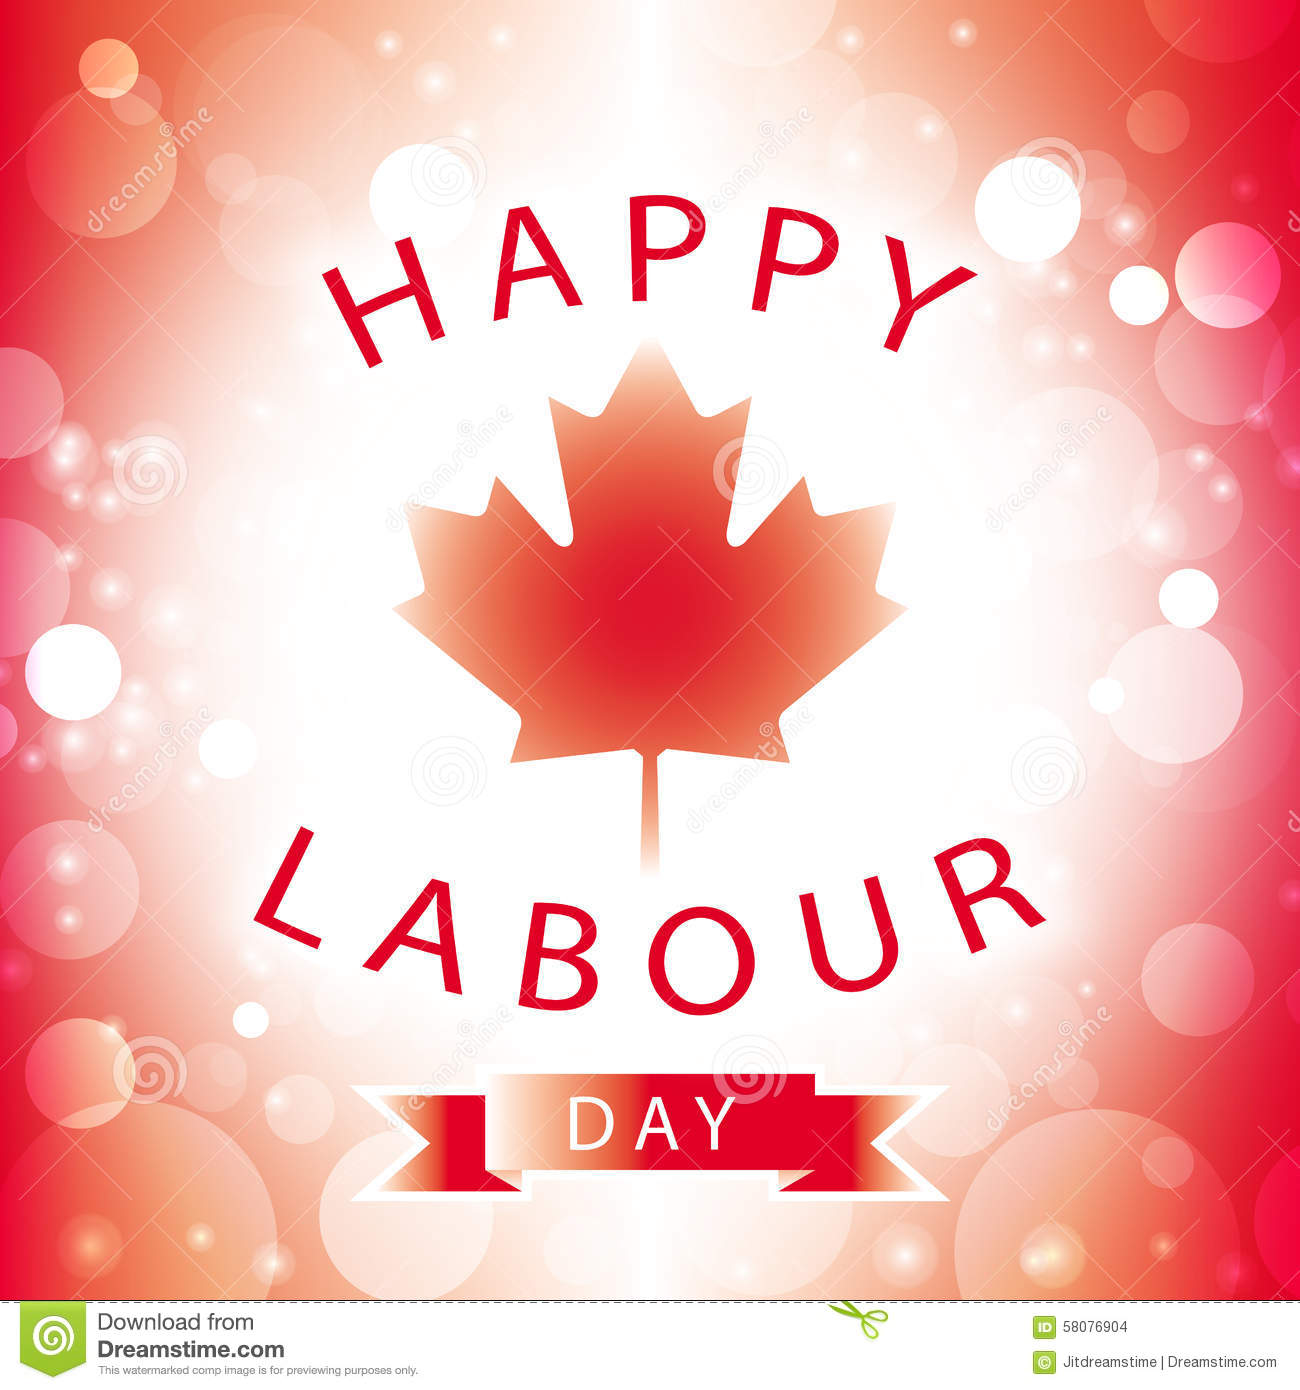 Happy Labour Day Canada Wishes Picture